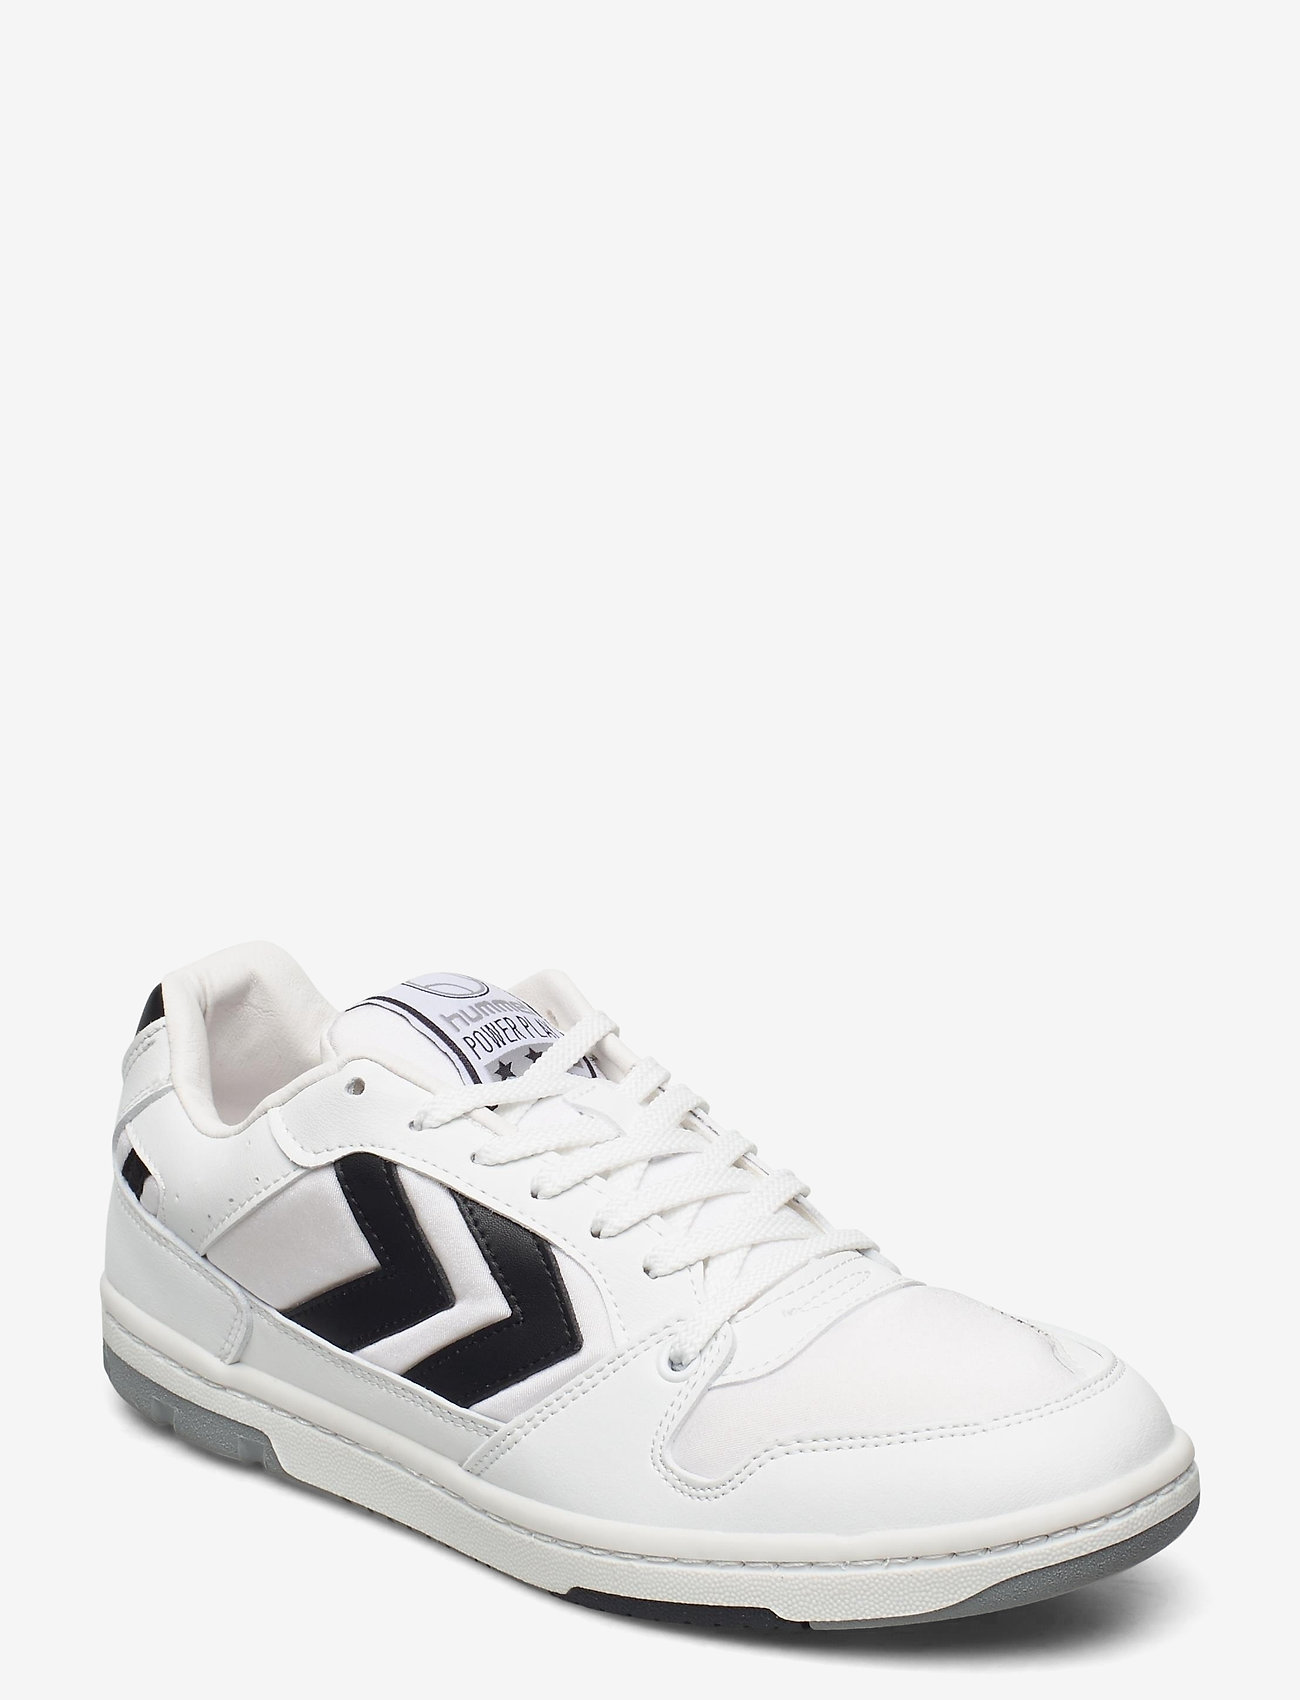 Hummel - POWER PLAY VEGAN ARCHIVE - laag sneakers - white/anthracite - 1